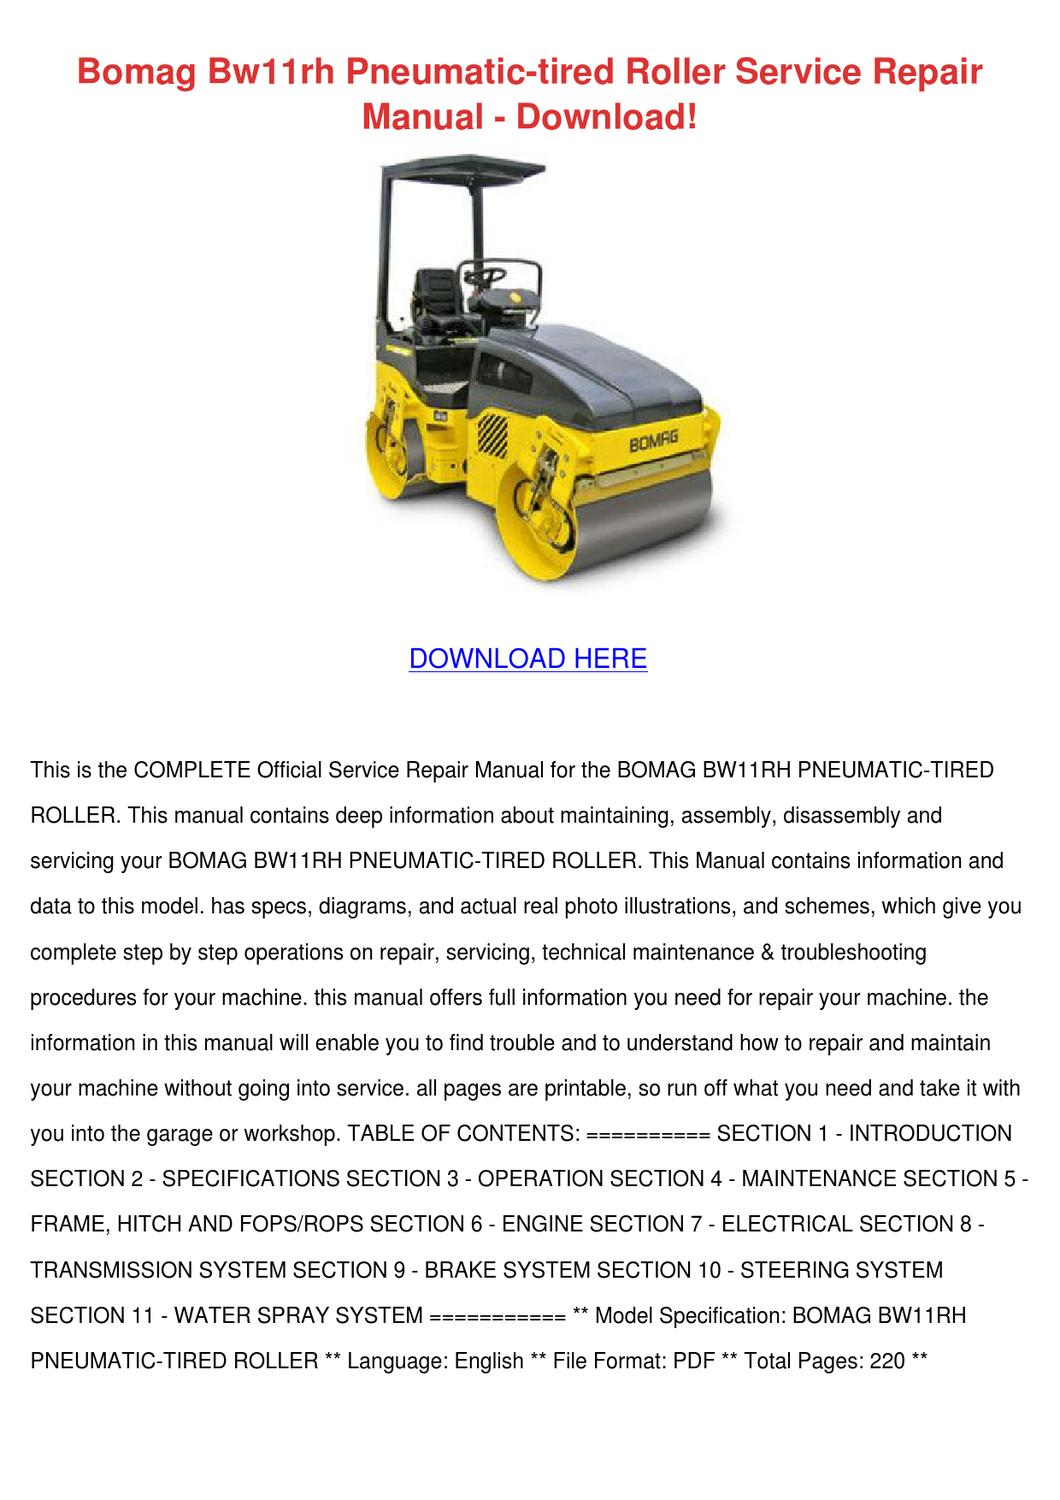 Bomag Bw11rh Pneumatic Tired Roller Service R by CharleneWinchester - issuu